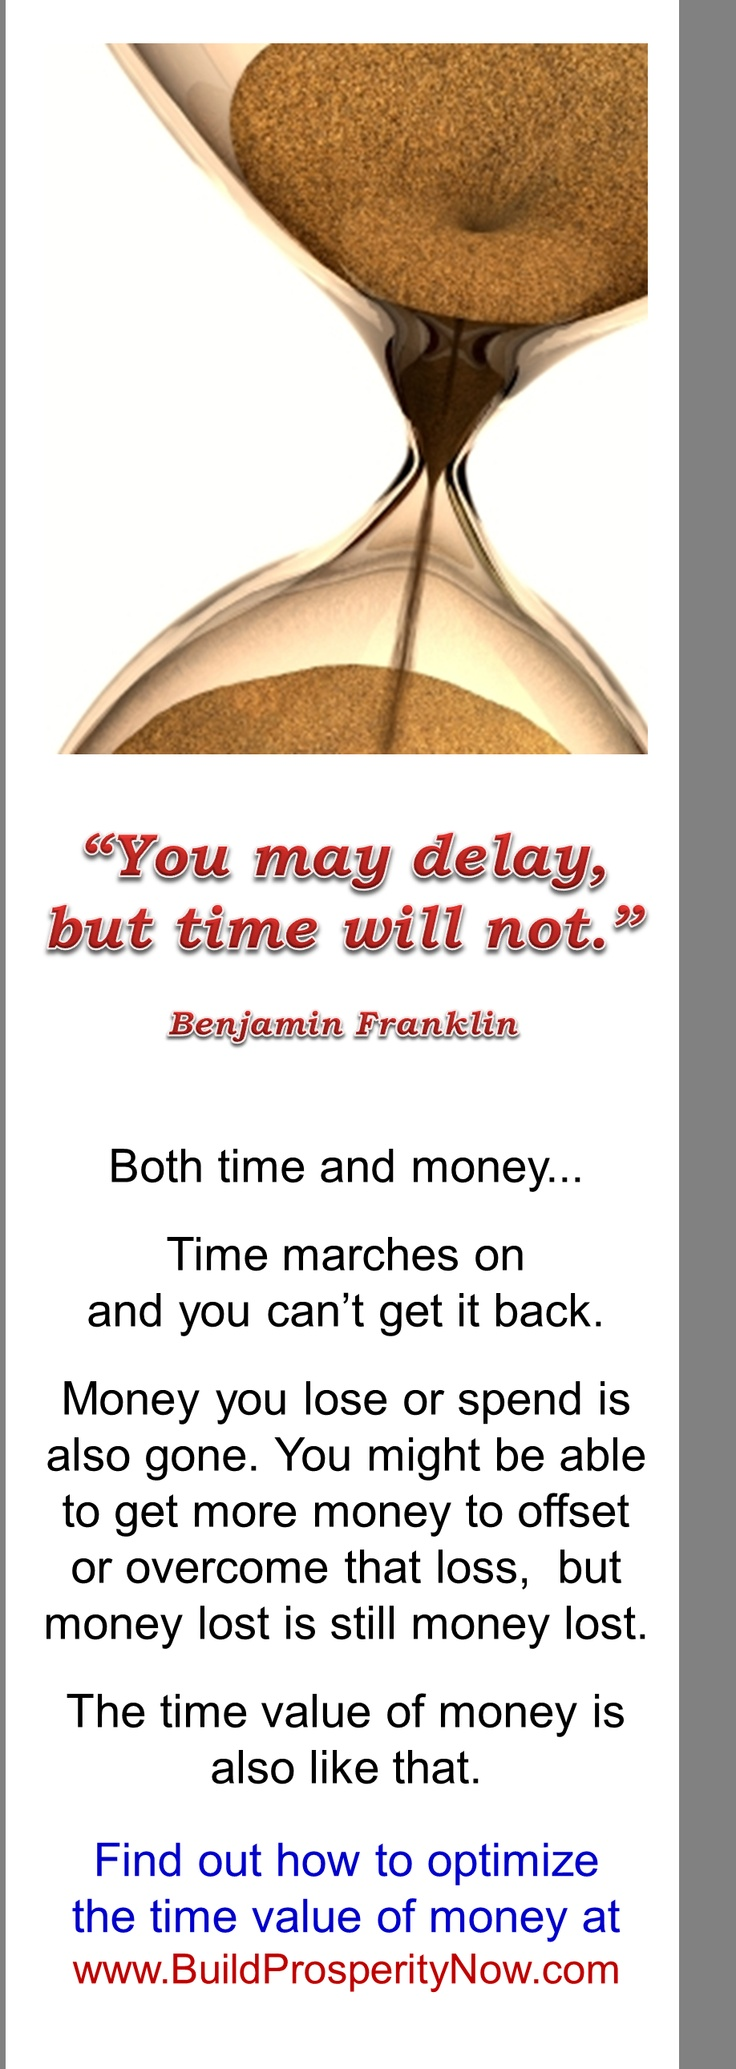 Benjamin Franklin was very observant and insightful, as